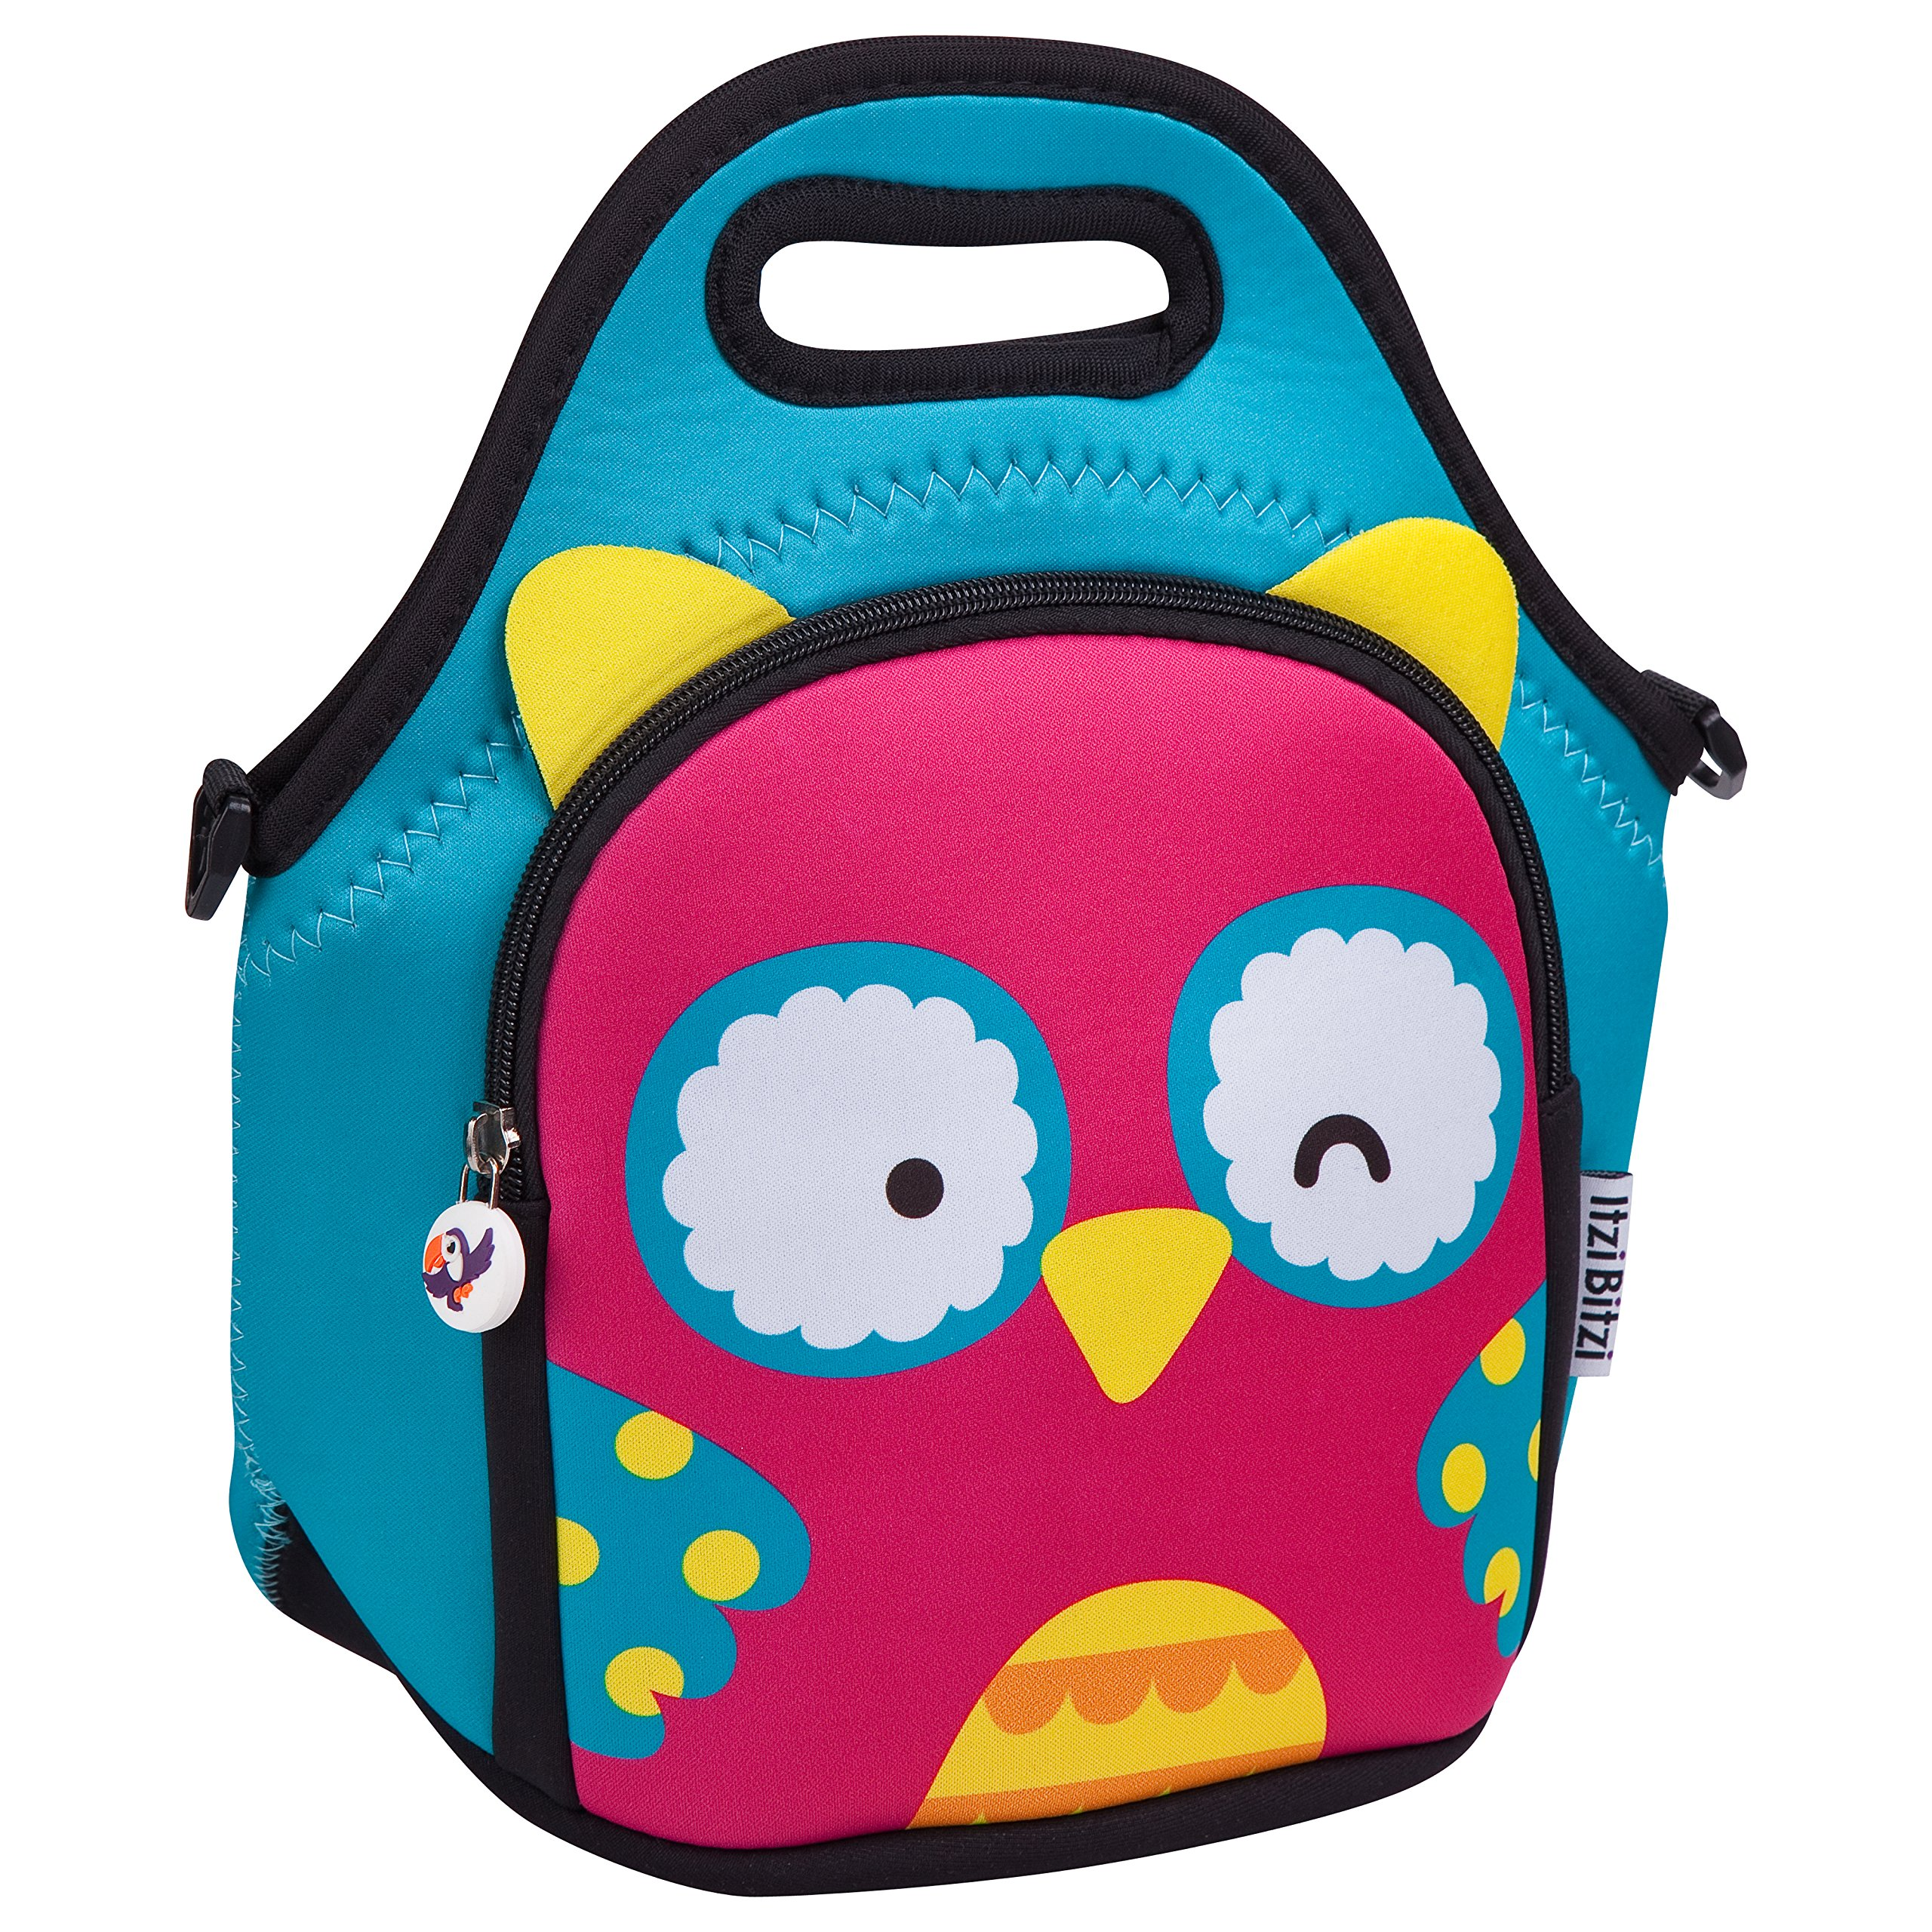 Waterproof, Insulated Kids Neoprene Lunch Bag with Adjustable Strap by Itzi Bitzi - Owl